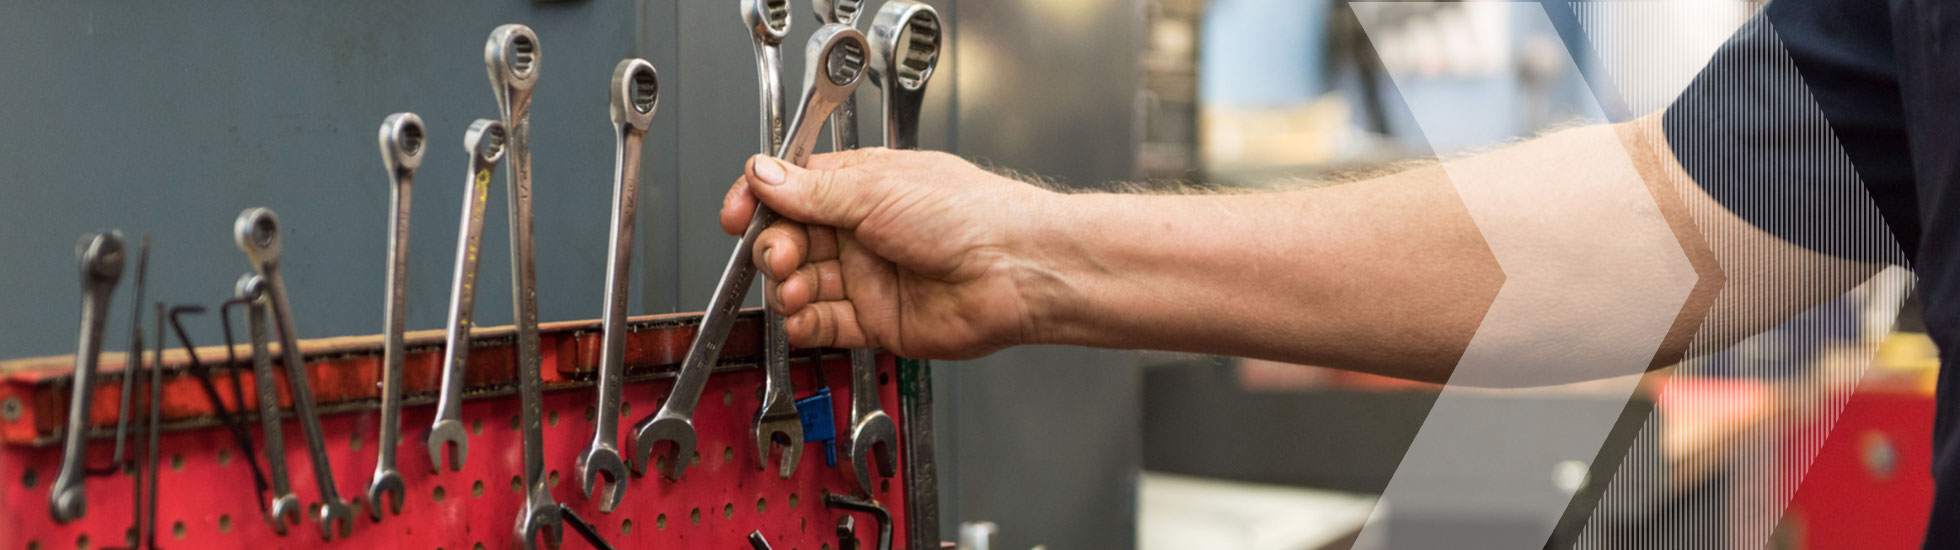 A hand reaching for a wrench in a red toolbox